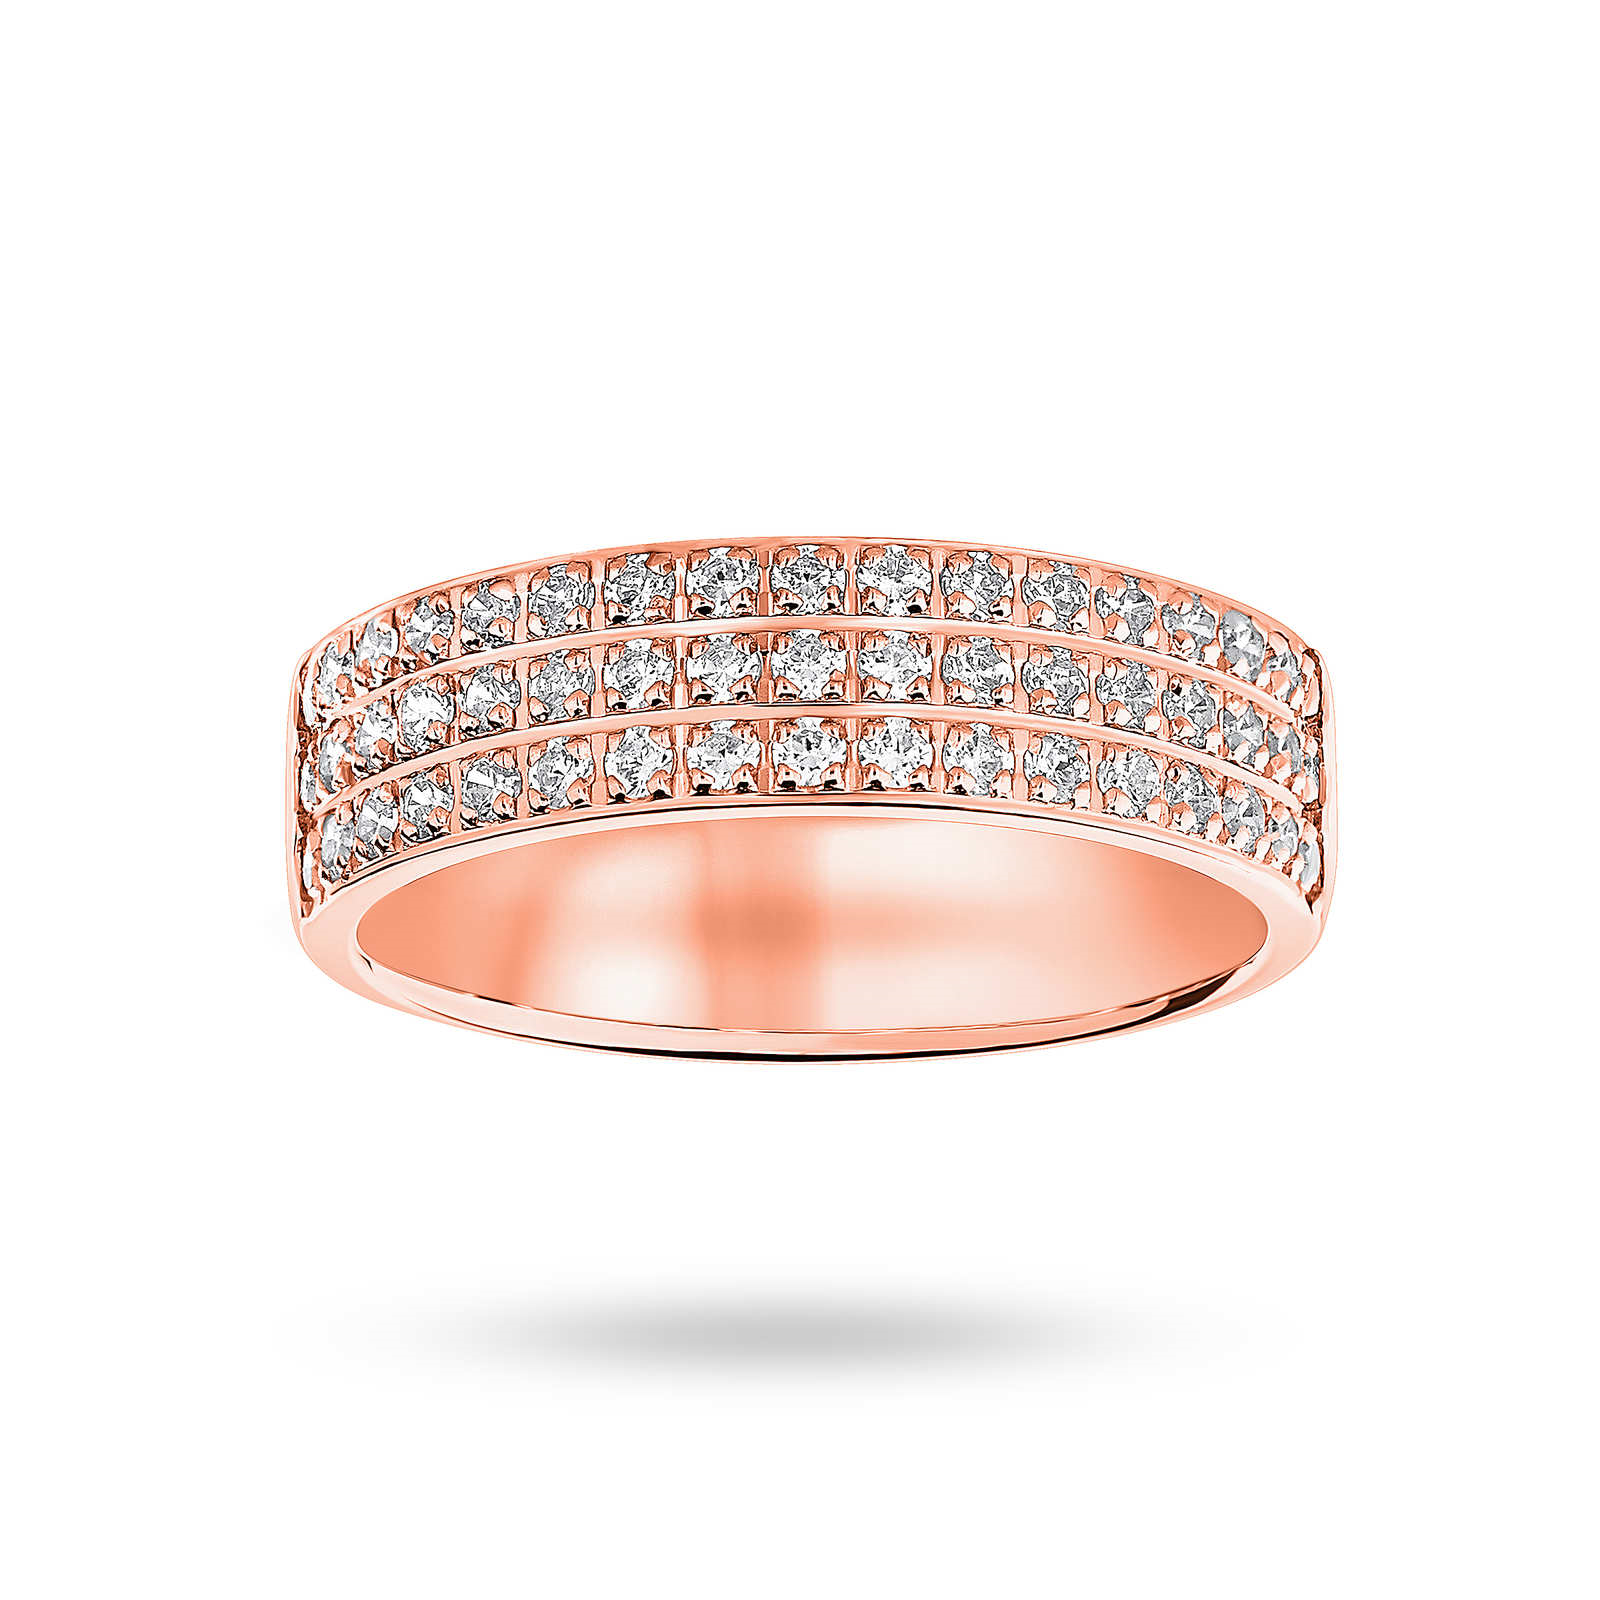 18ct Rose Gold 0.50ct 3 Row Half Eternity Ring - Ring Size L